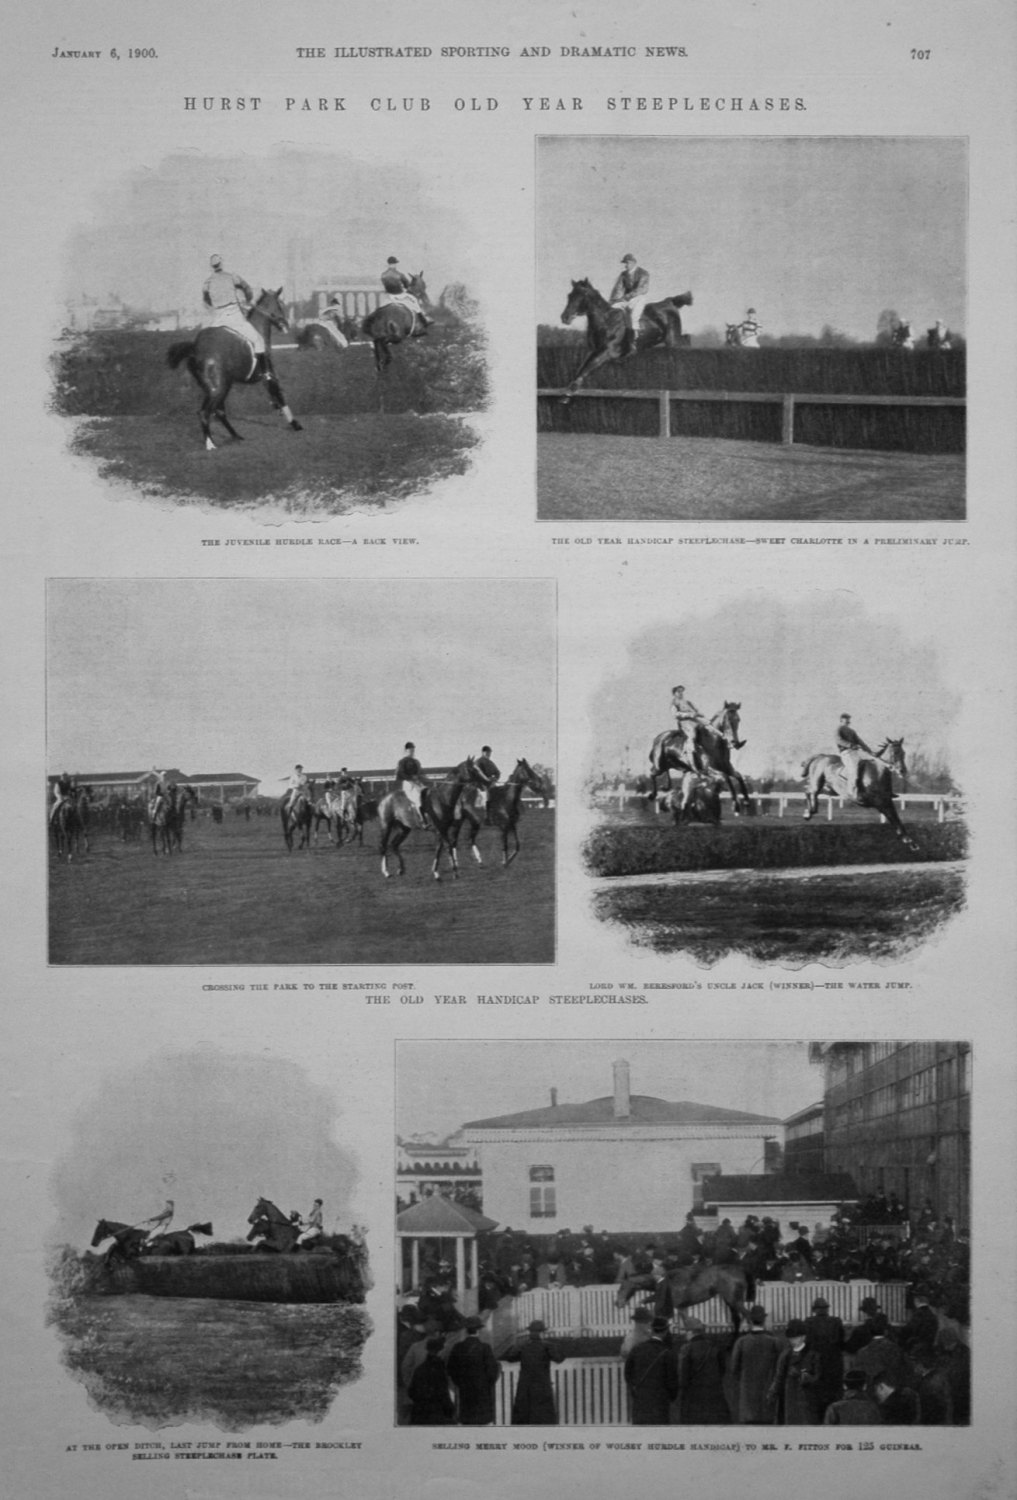 Hurst Park Club Old Year Steeplechases. 1900